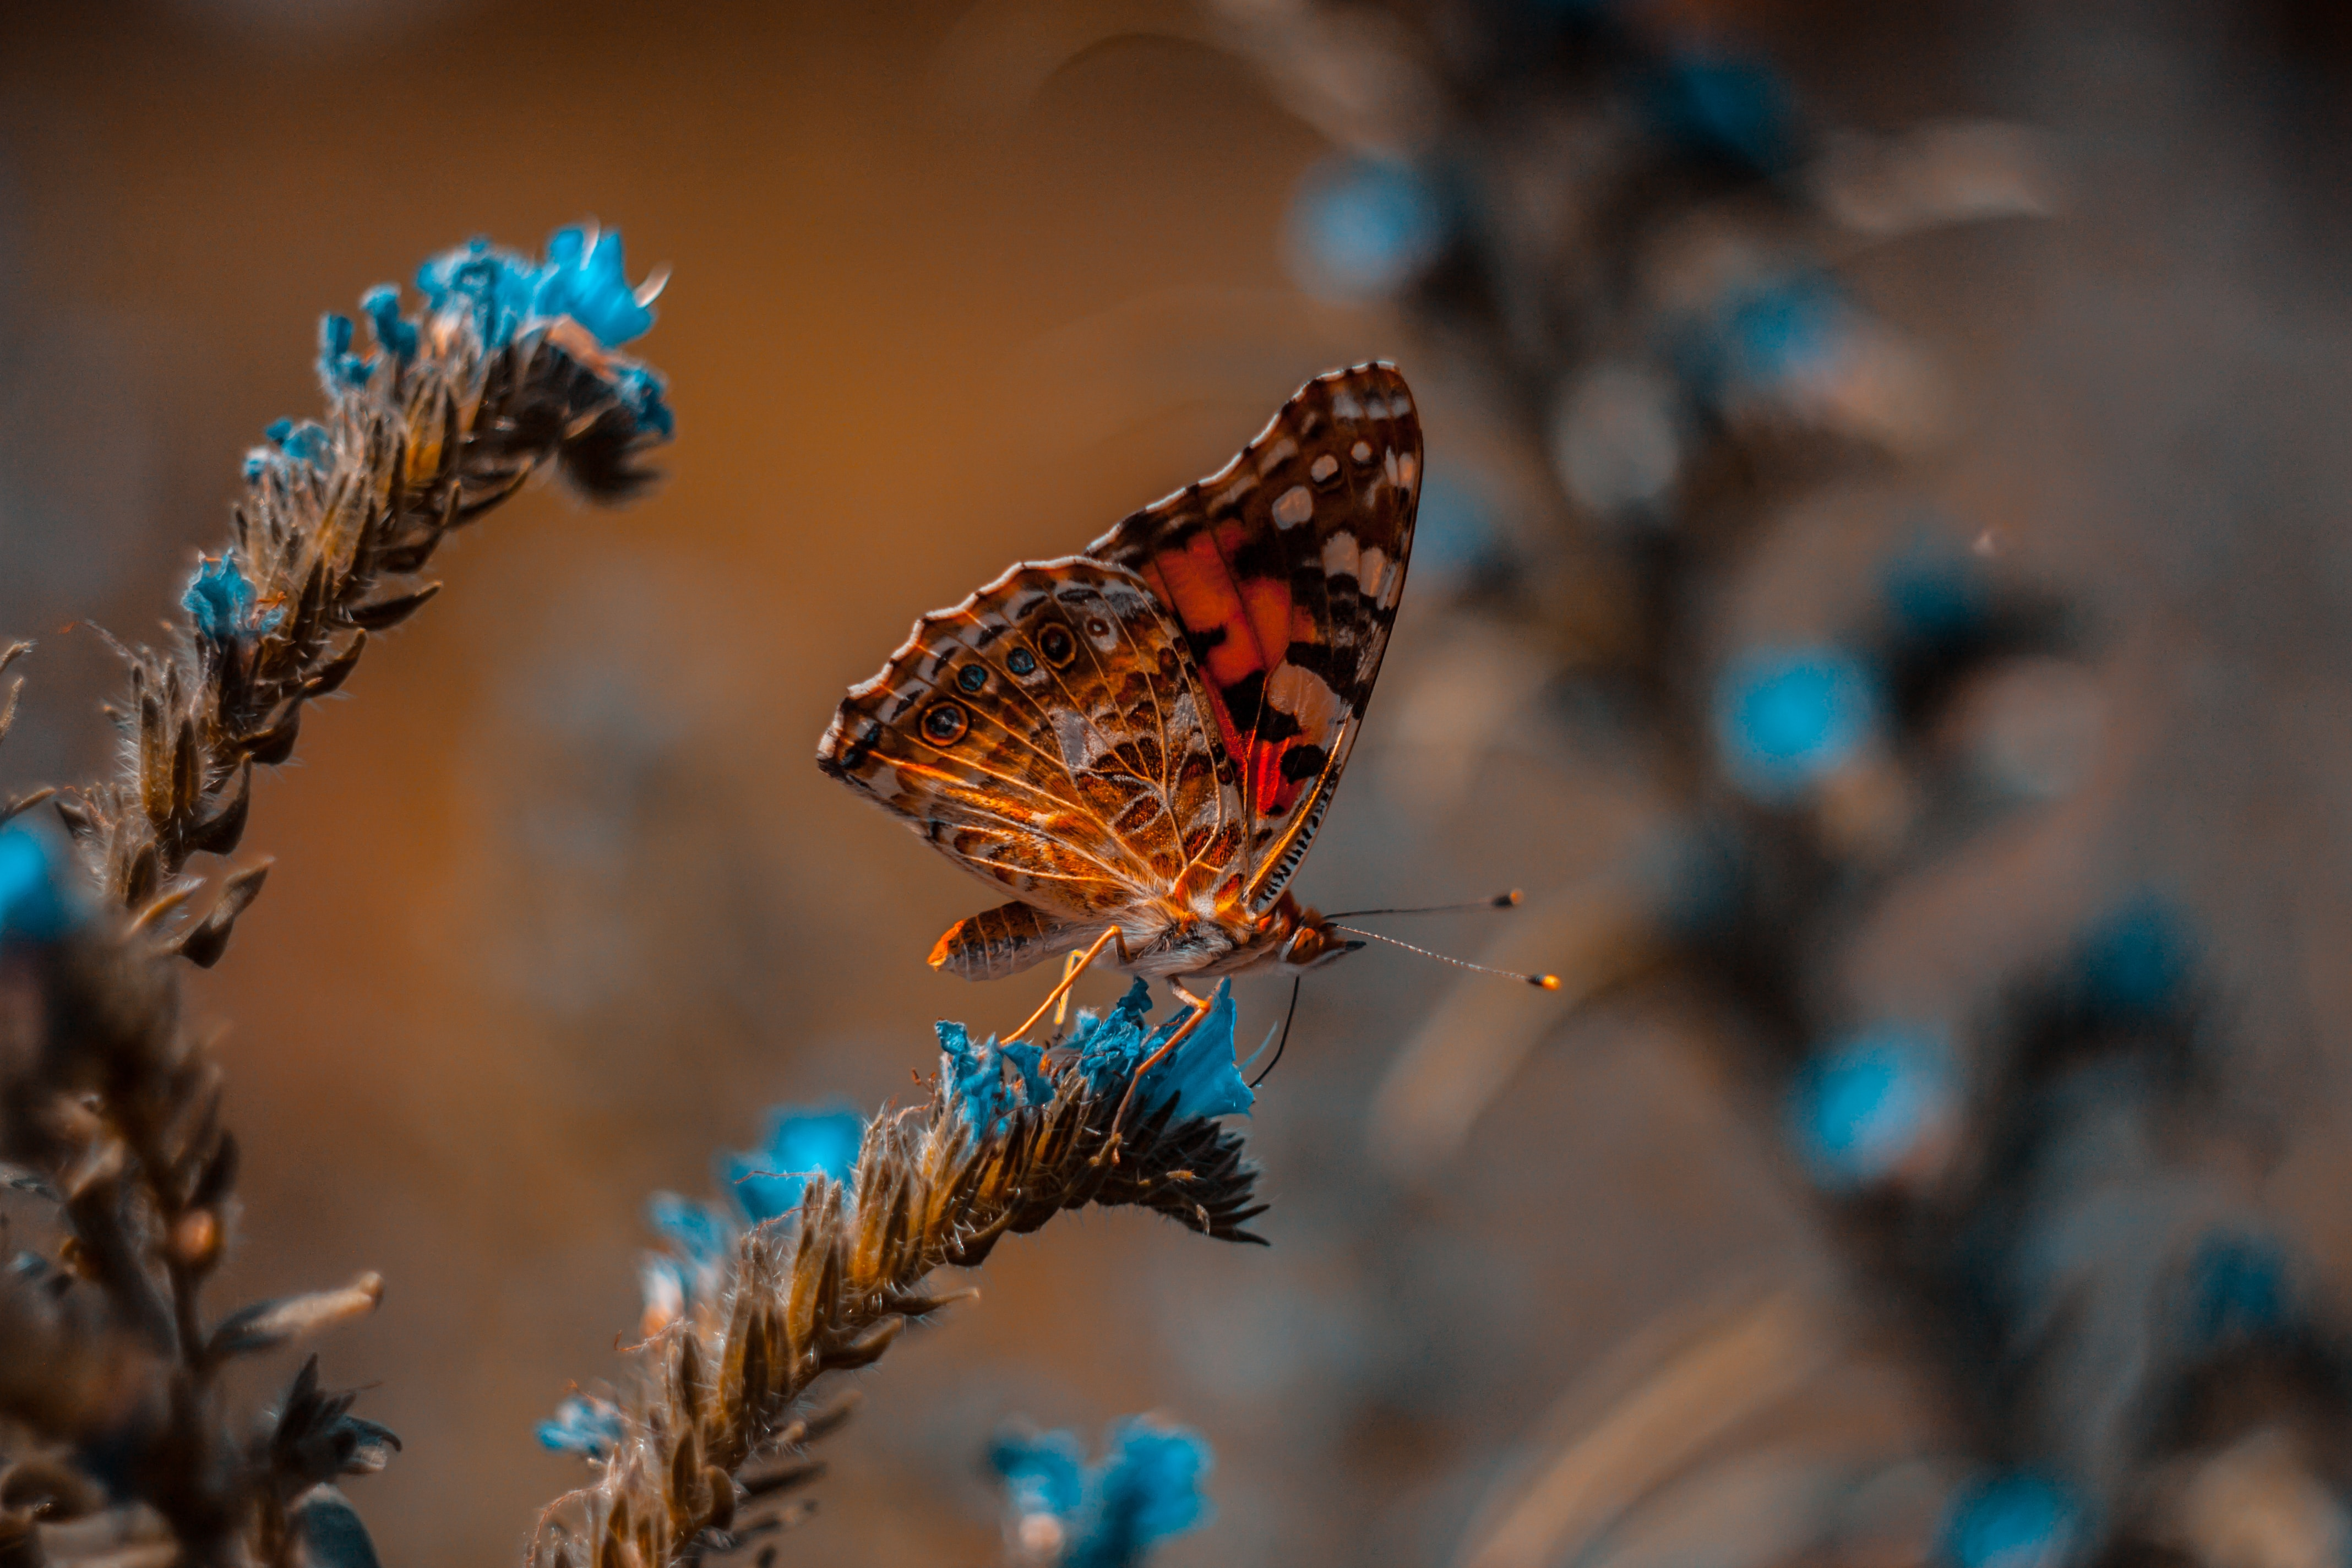 114103 download wallpaper Flower, Macro, Insect, Butterfly screensavers and pictures for free